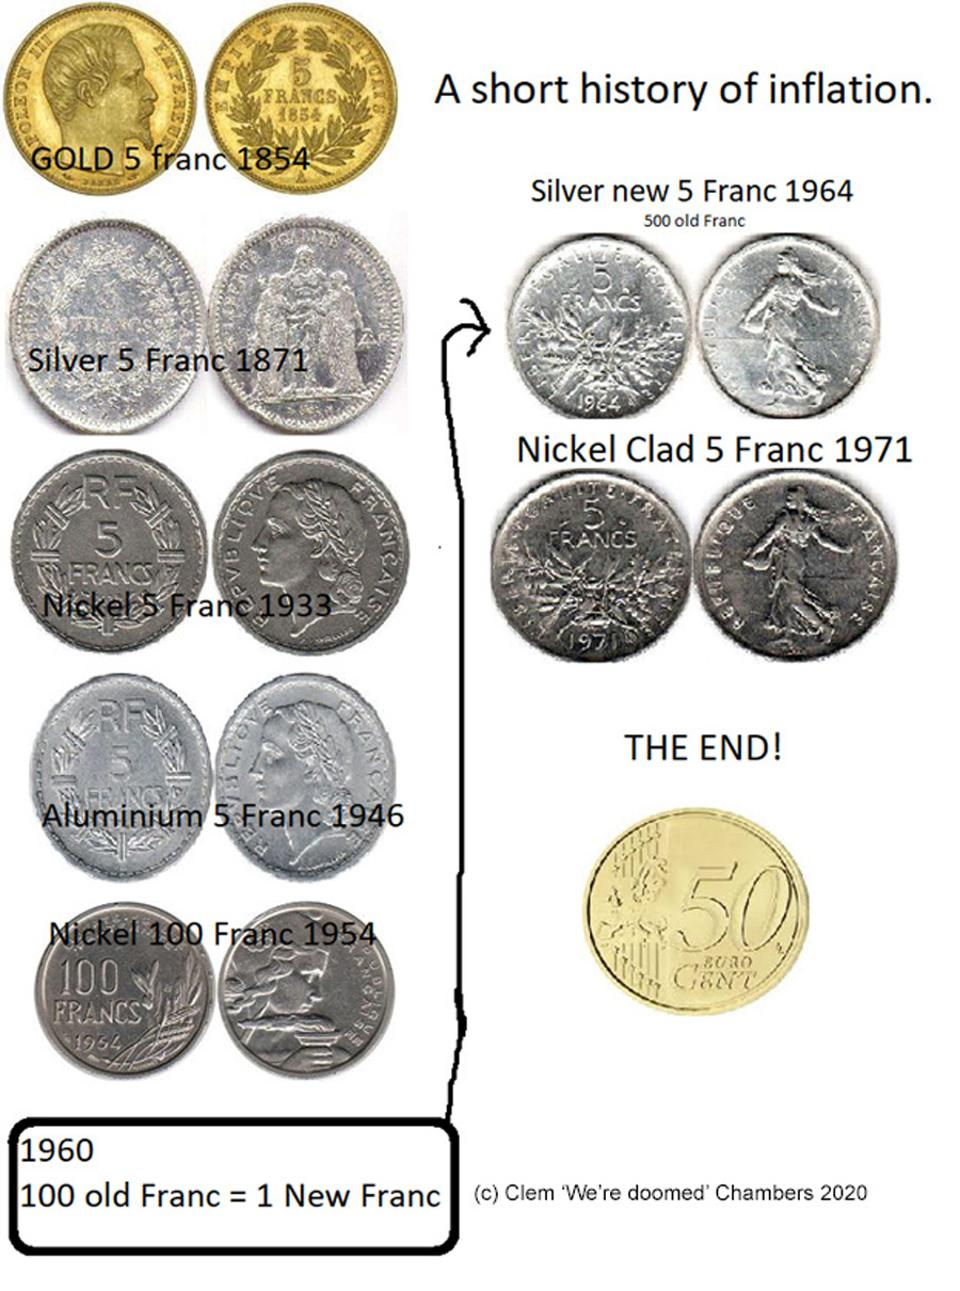 The hiustory of French coins shows how inflation works